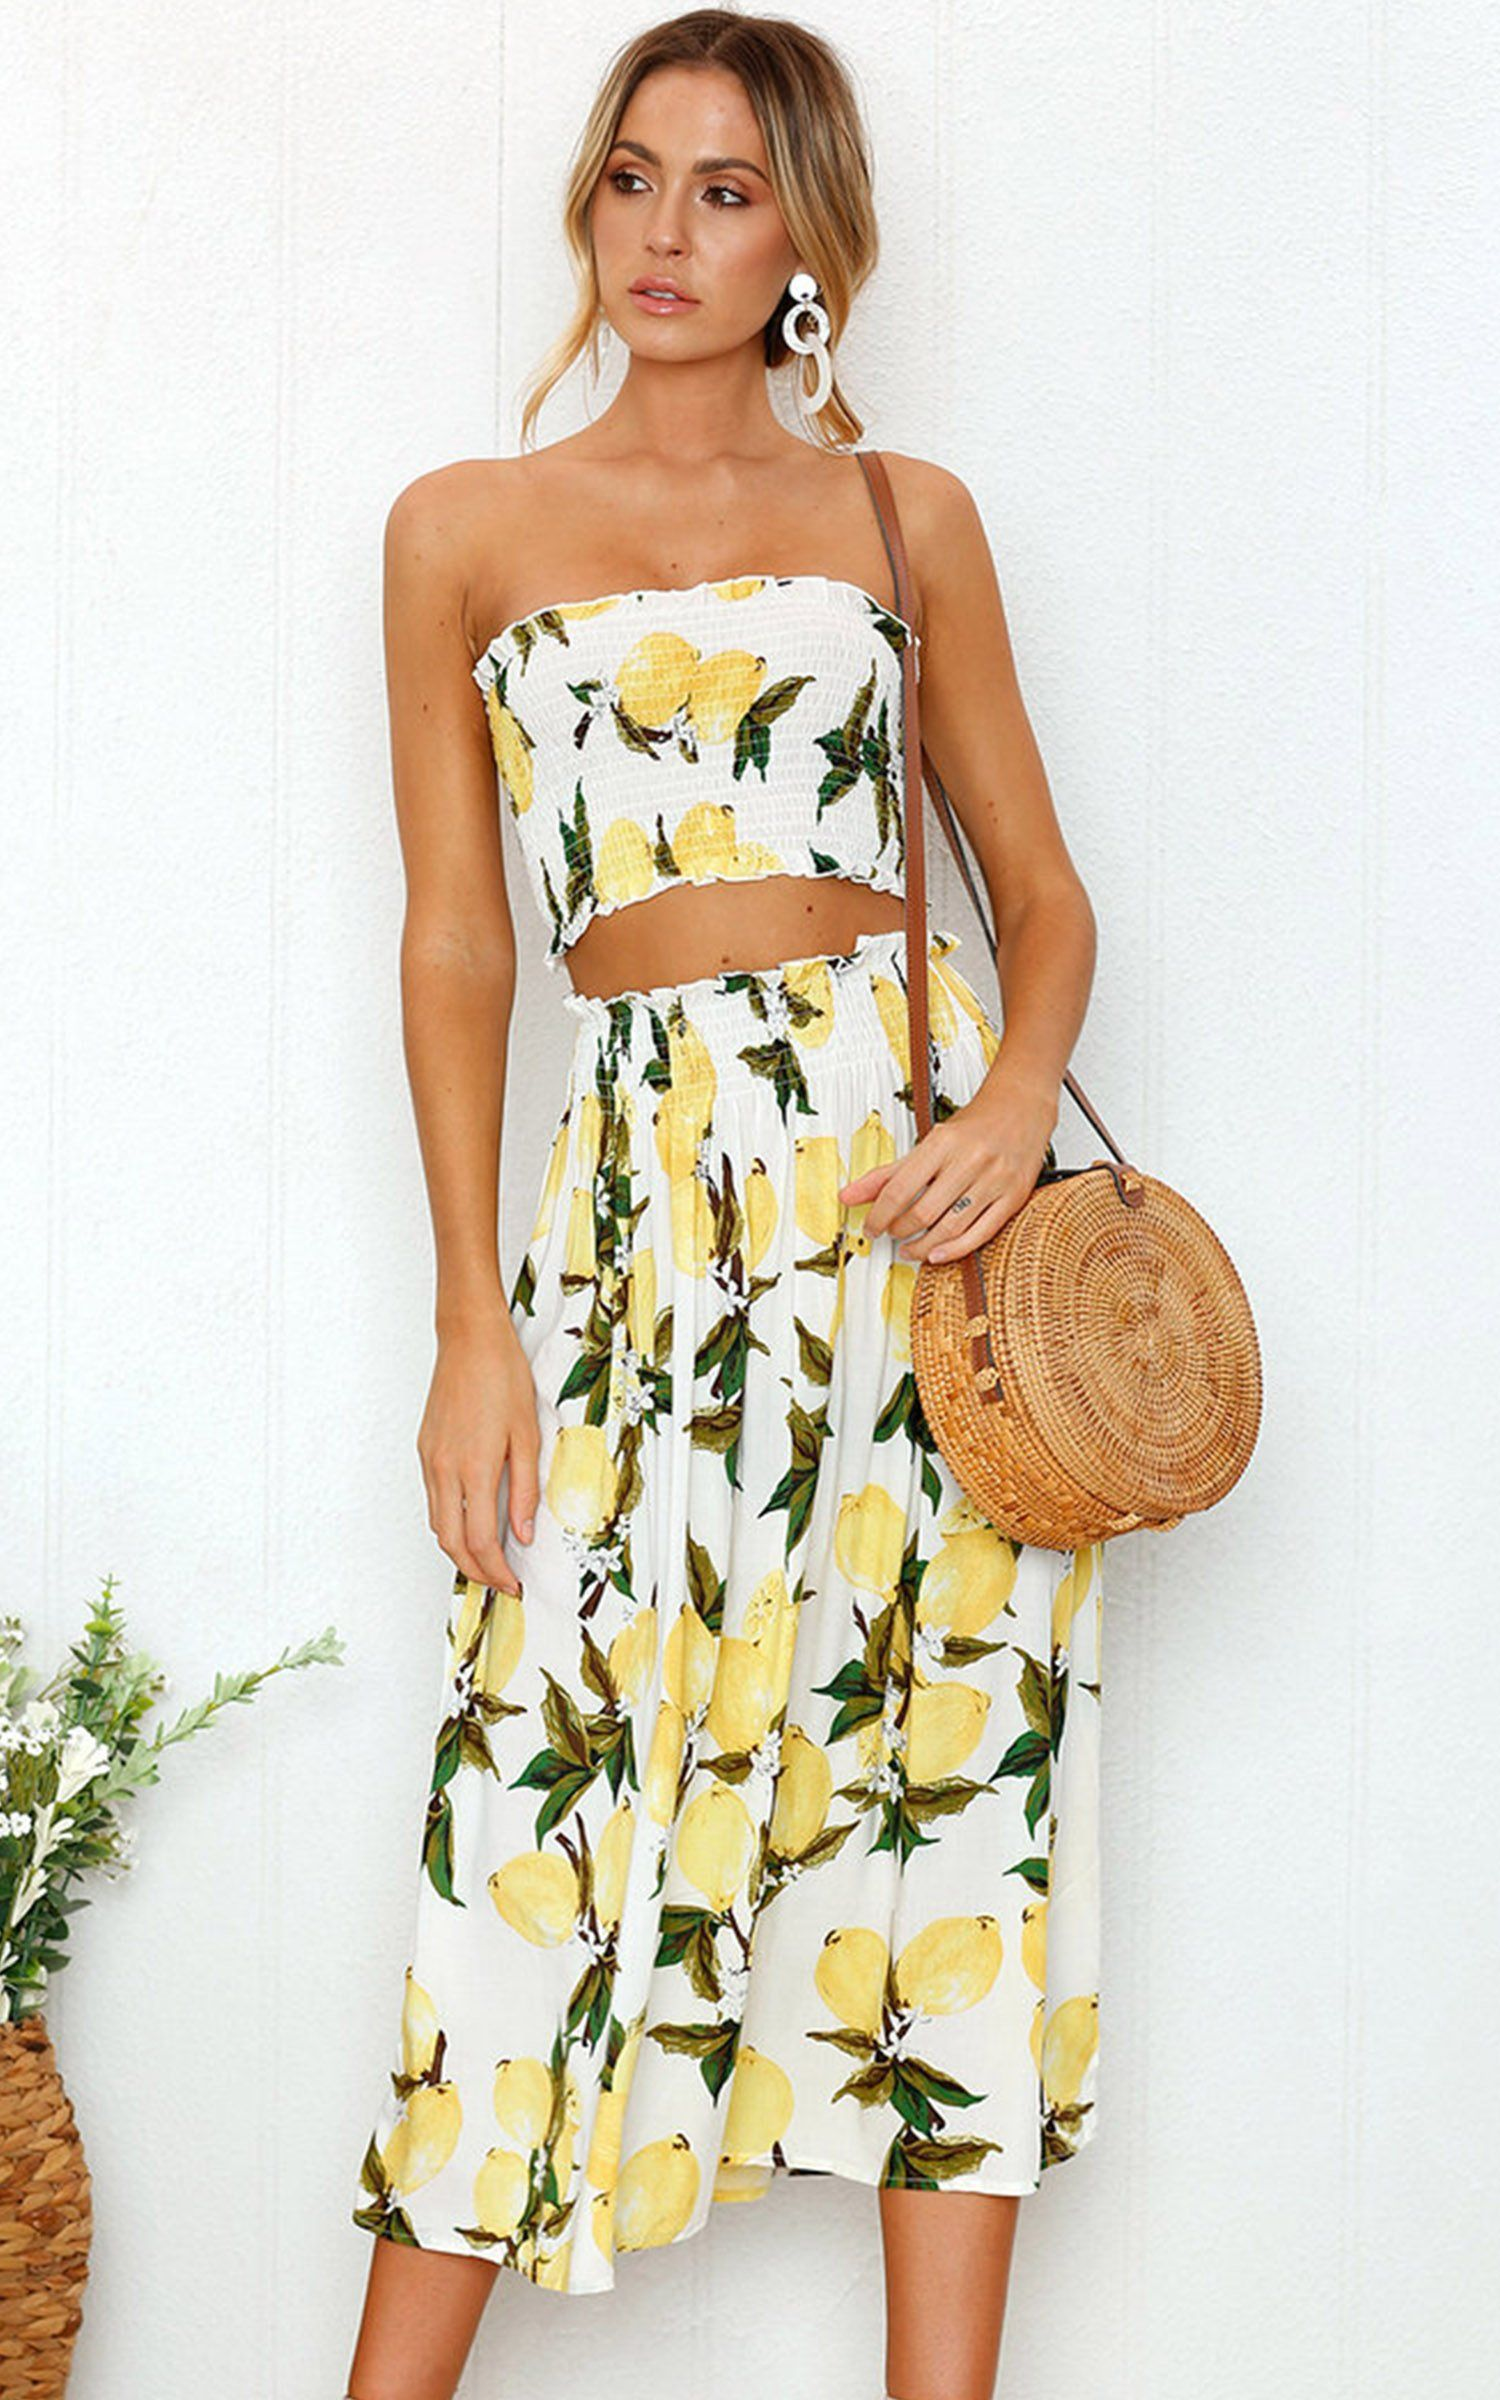 Angashion Womens Floral Crop Top Maxi Skirt Set 2 Piece Outfit Dress Lemon S Check This Awesome Product Maxi Skirt Crop Top Maxi Skirt Outfits Skirt Outfits [ 2400 x 1500 Pixel ]